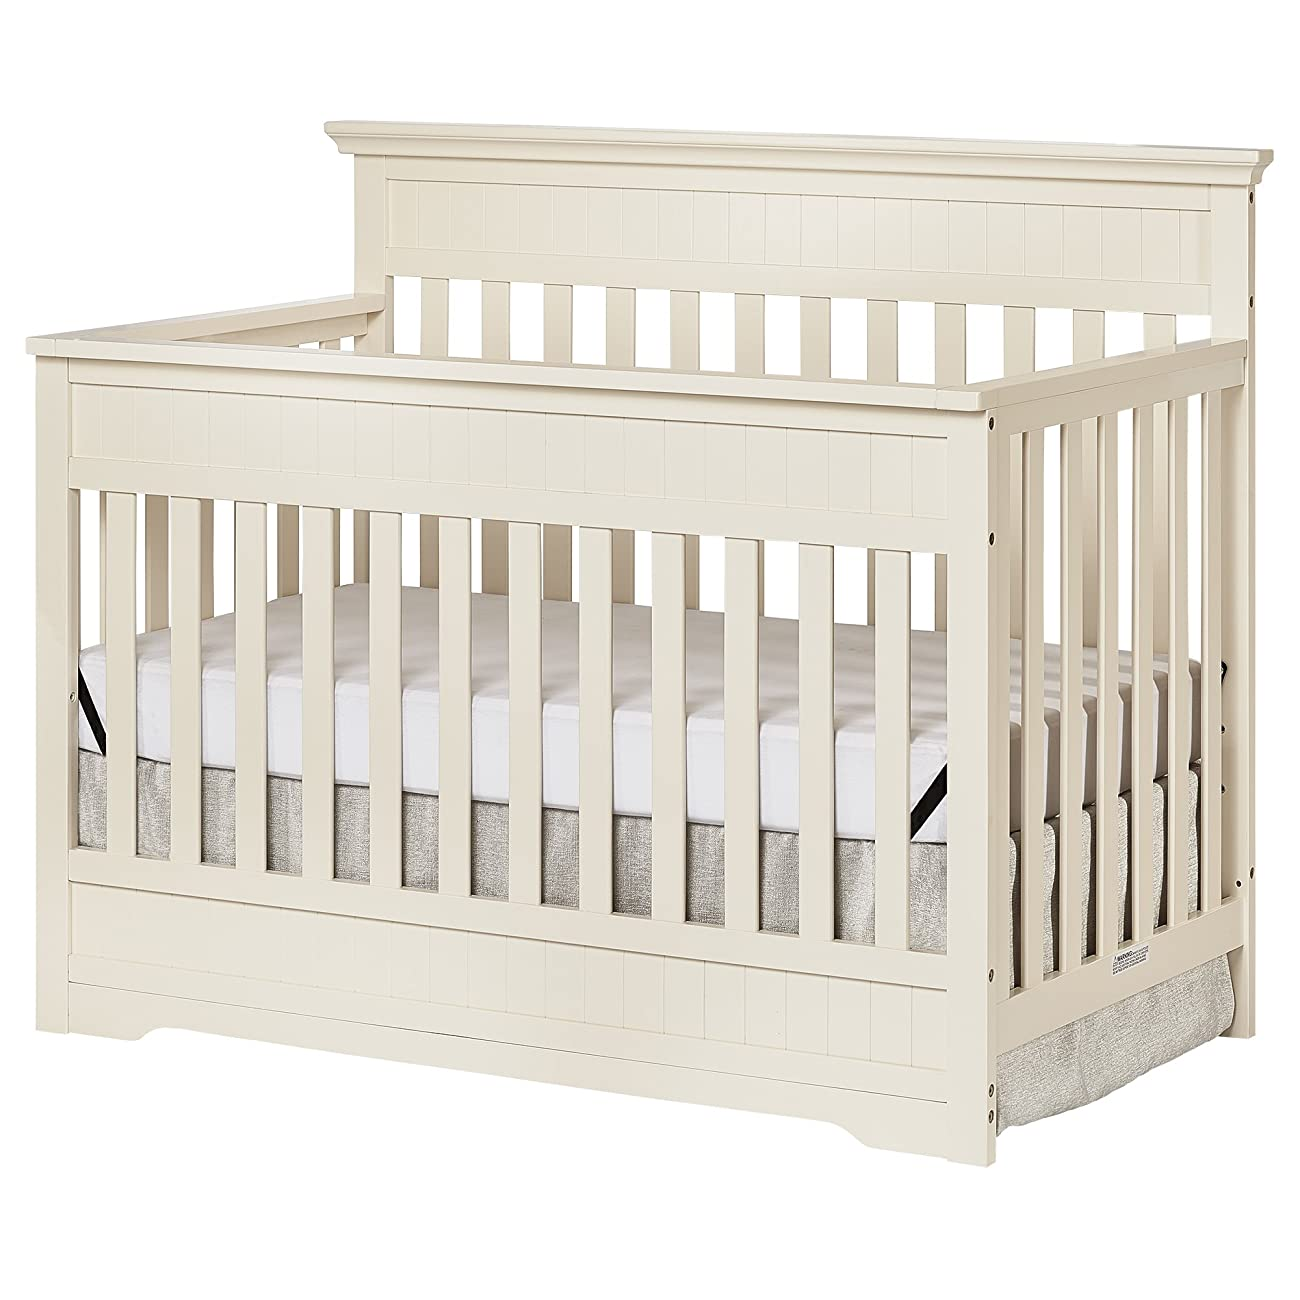 Dream On Me Chesapeake 5-In-1 Convertible Crib, French White 1